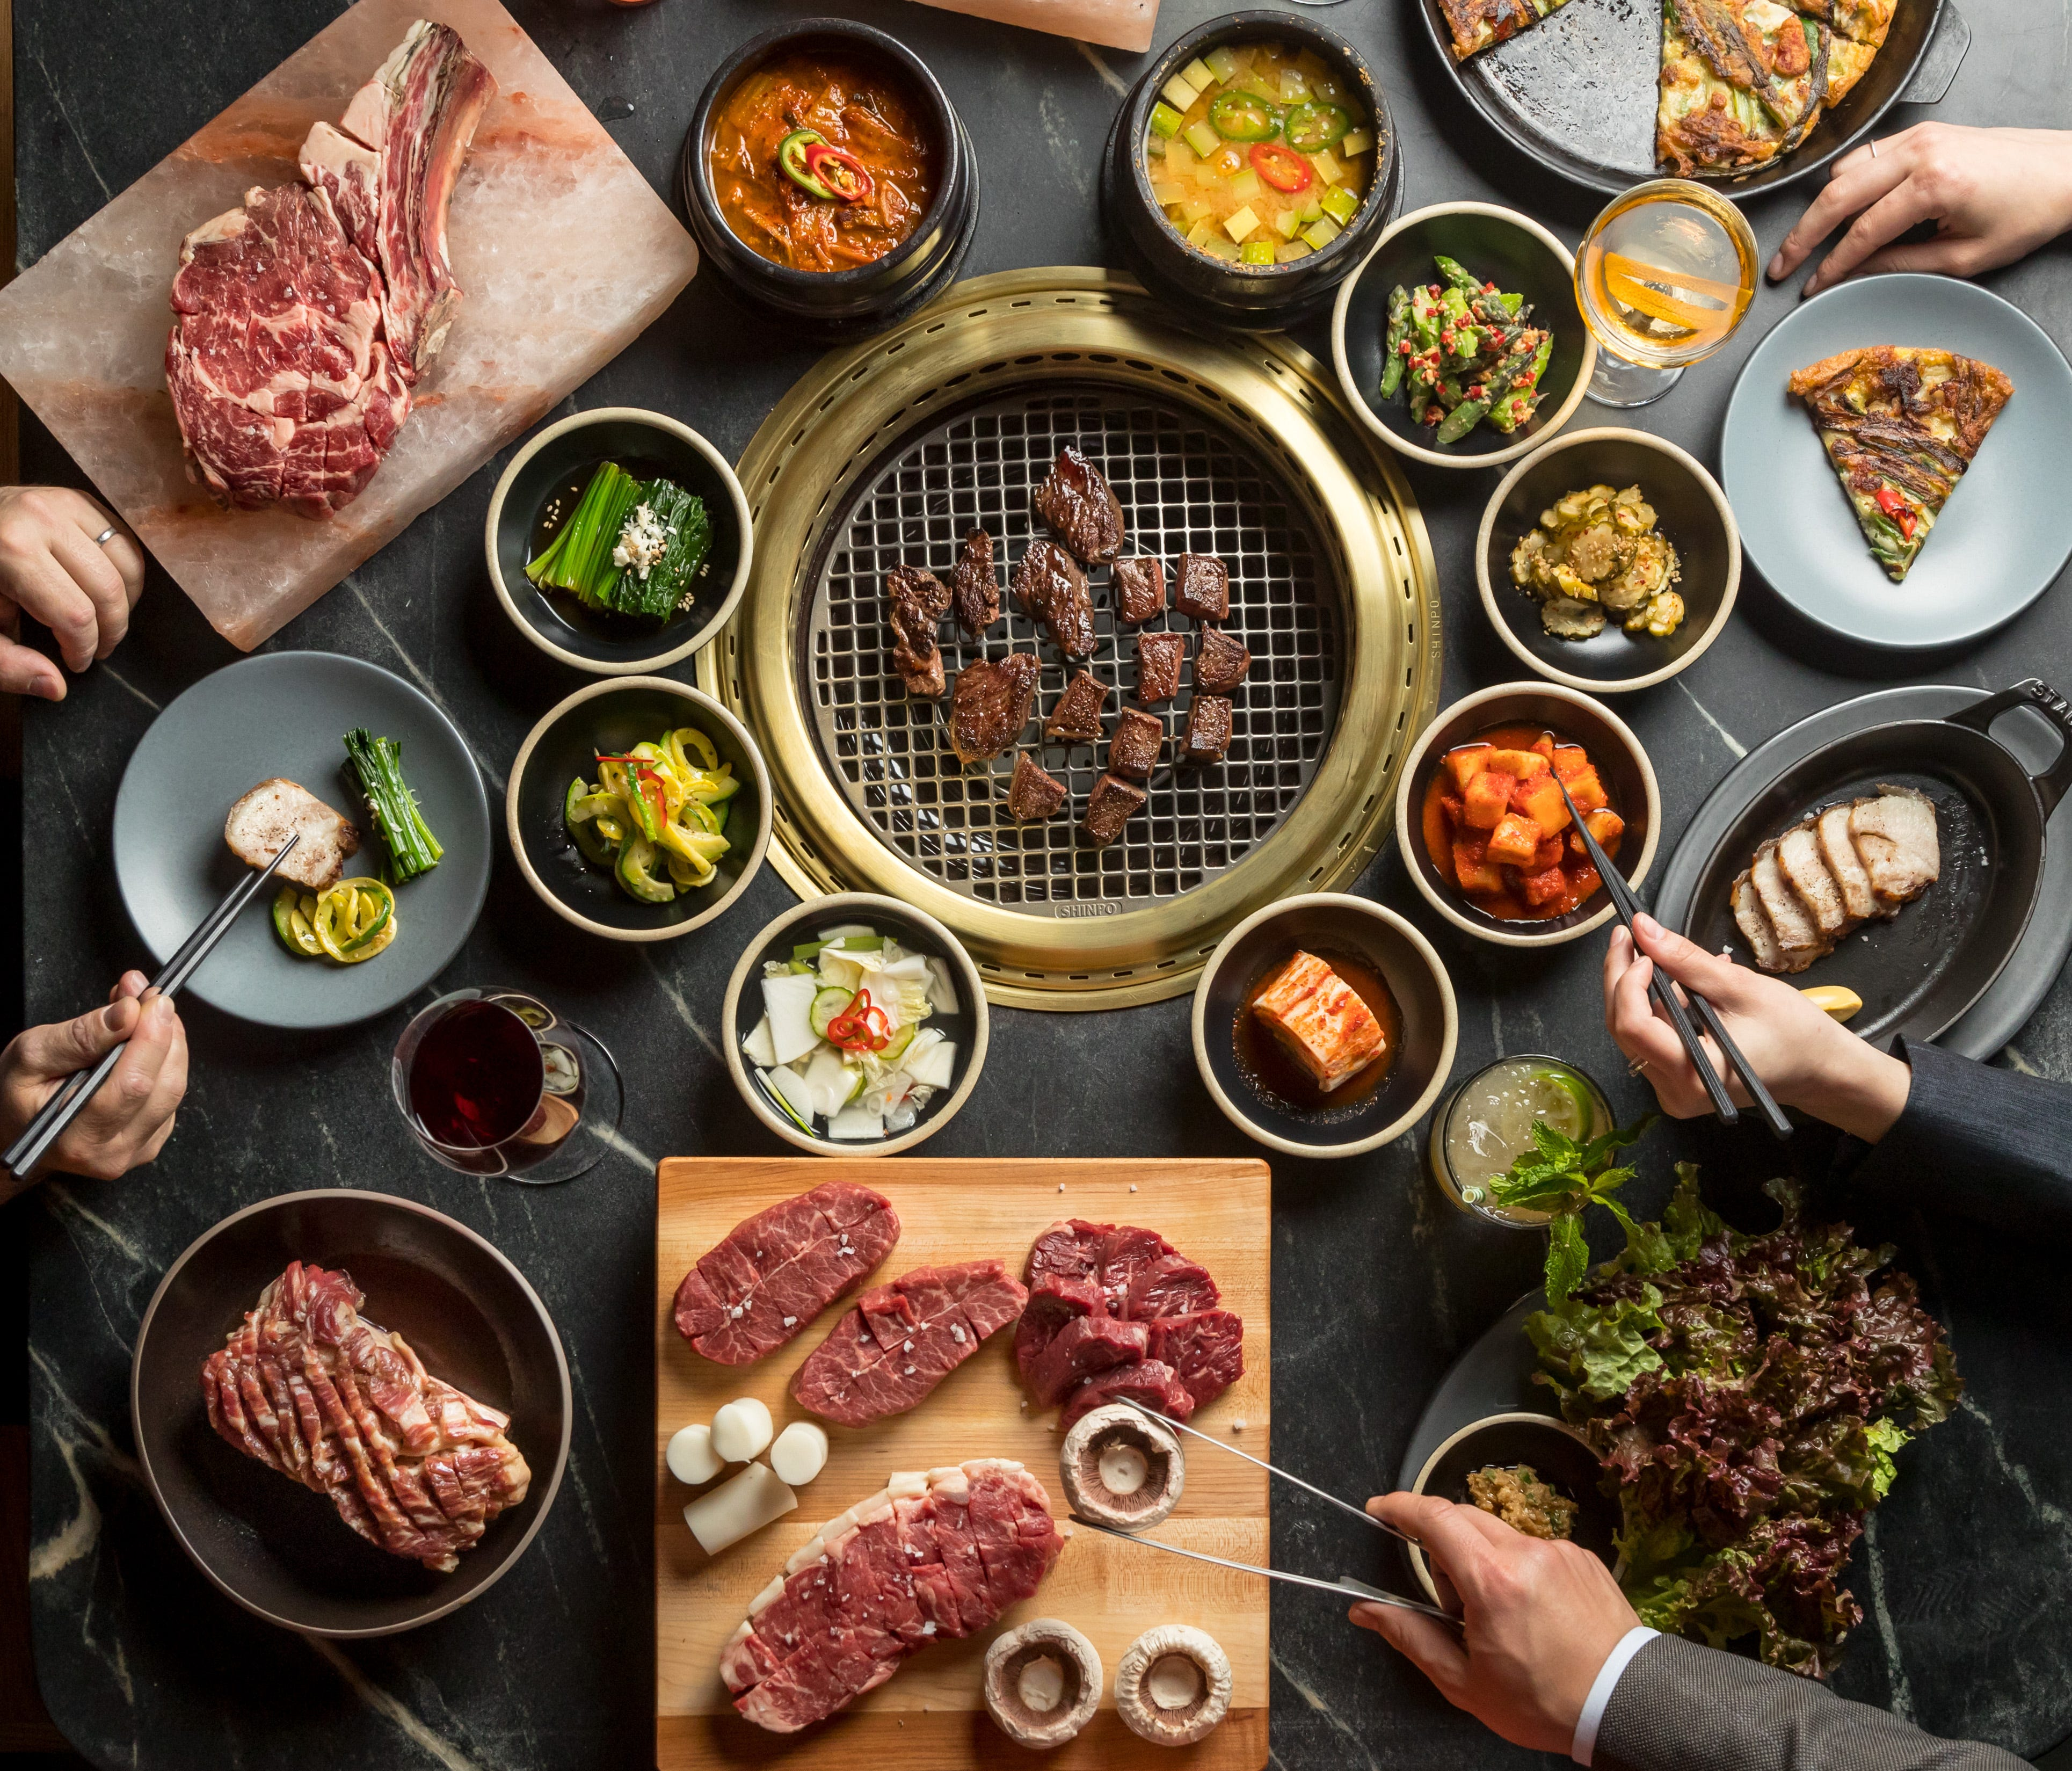 The main signature option at Cote is the prix fixe Butcher's Feast, four courses of USDA Prime beef, all cooked at the table, with a slew of appetizers, side dishes and dessert.